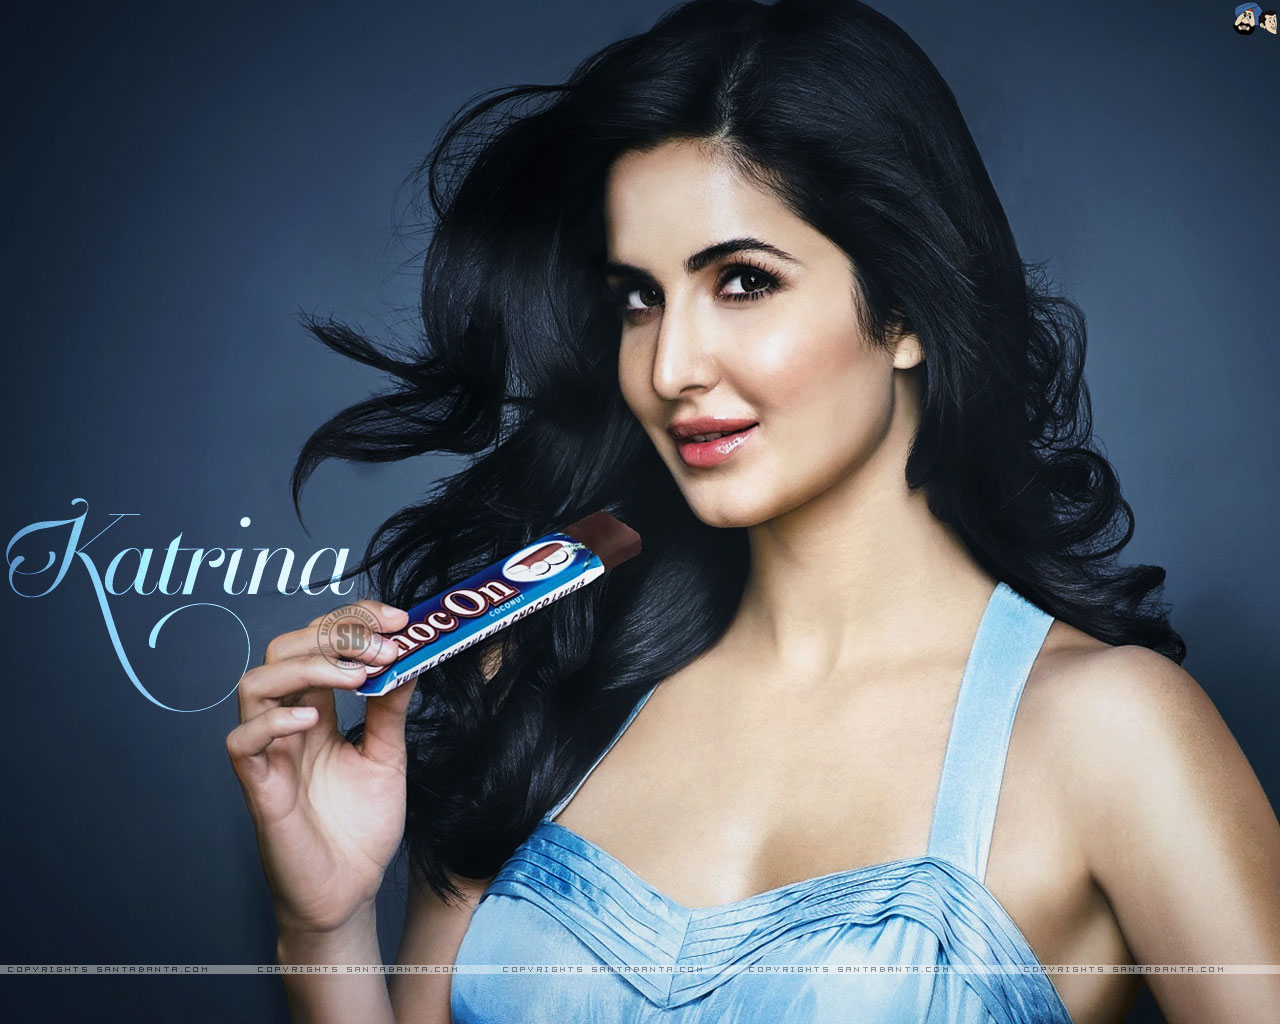 Katrina Kaif Xxx Photo Full Hd